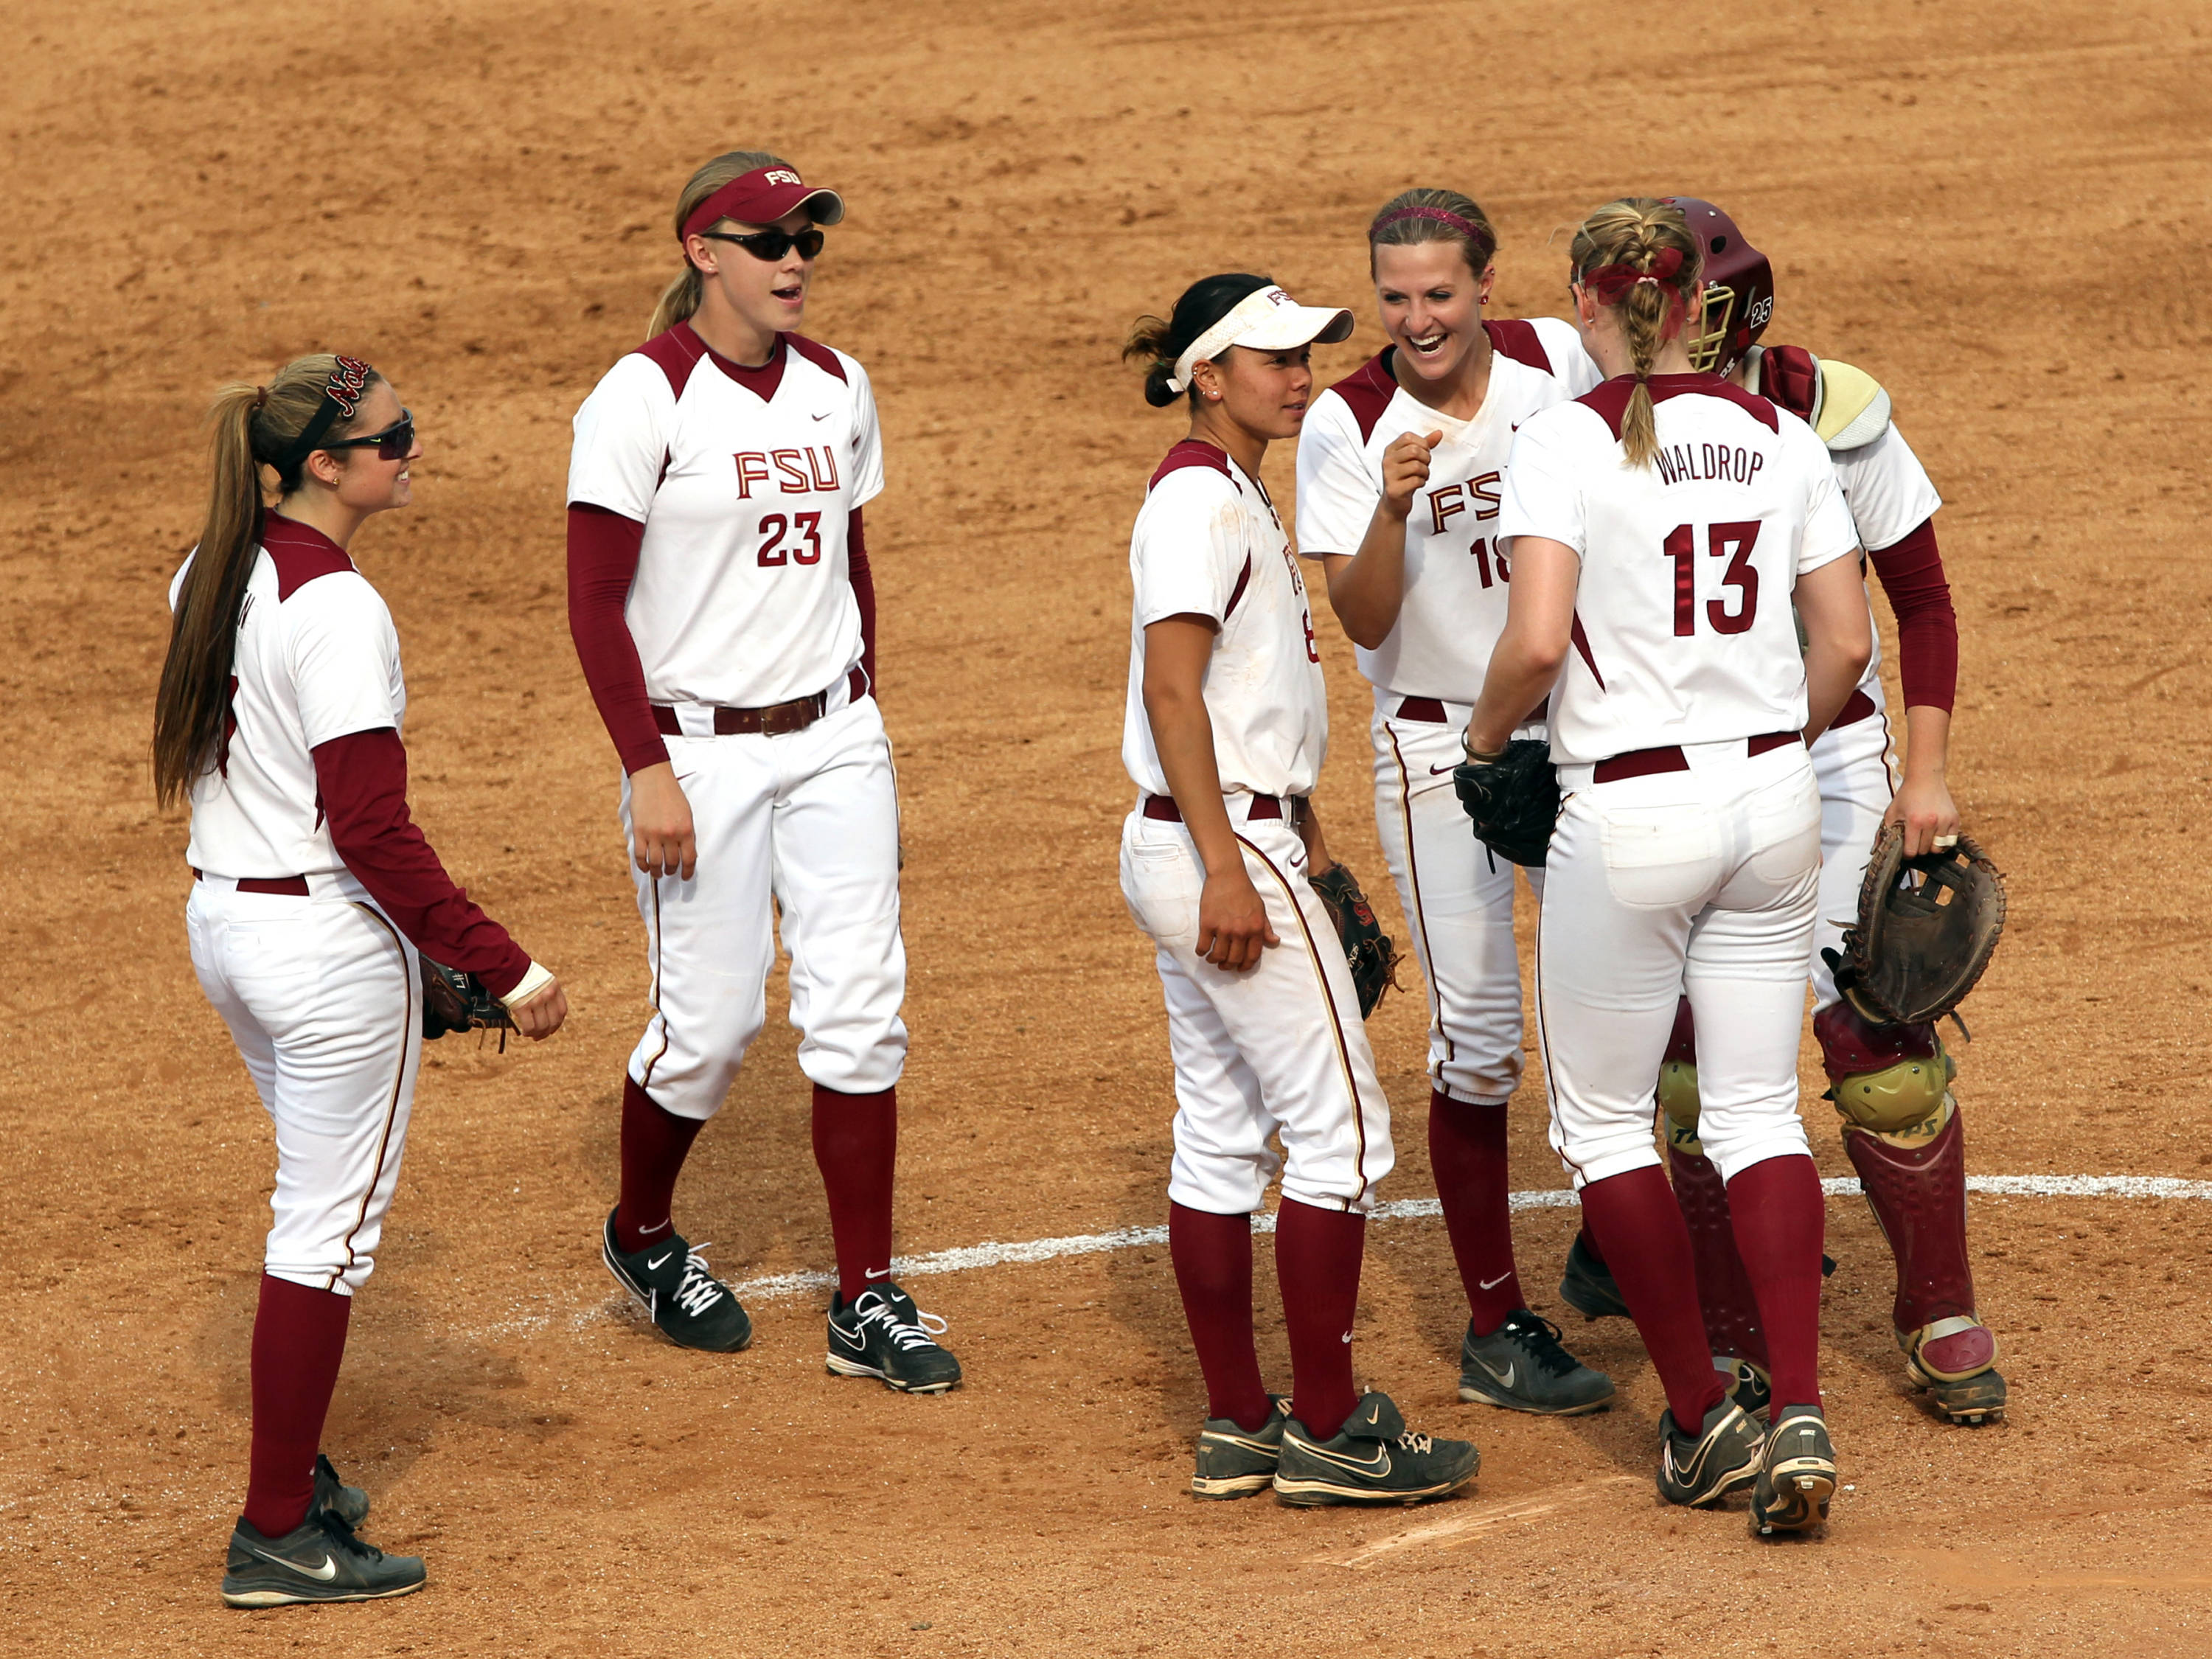 Celebrating a great play, FSU VS NC, ACC Championship Semifinals, Tallahassee, FL,  05/10/13 . (Photo by Steve Musco)